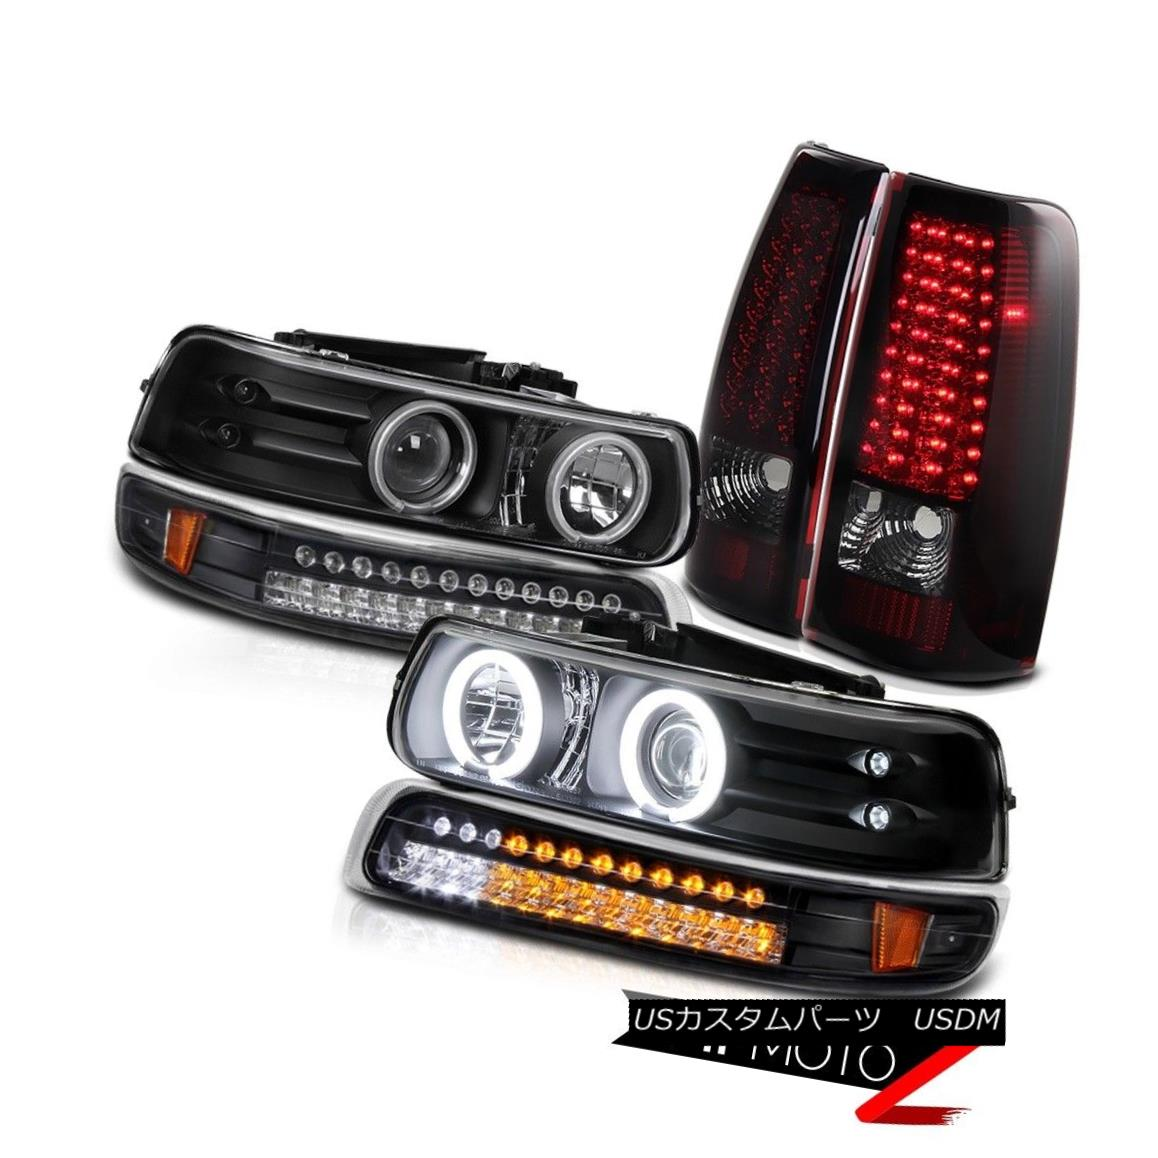 BLACK AMBER BUMPER HEADLIGHT+CLEAR LENS LED BAR TAIL LIGHT FOR 99-02 SILVERADO